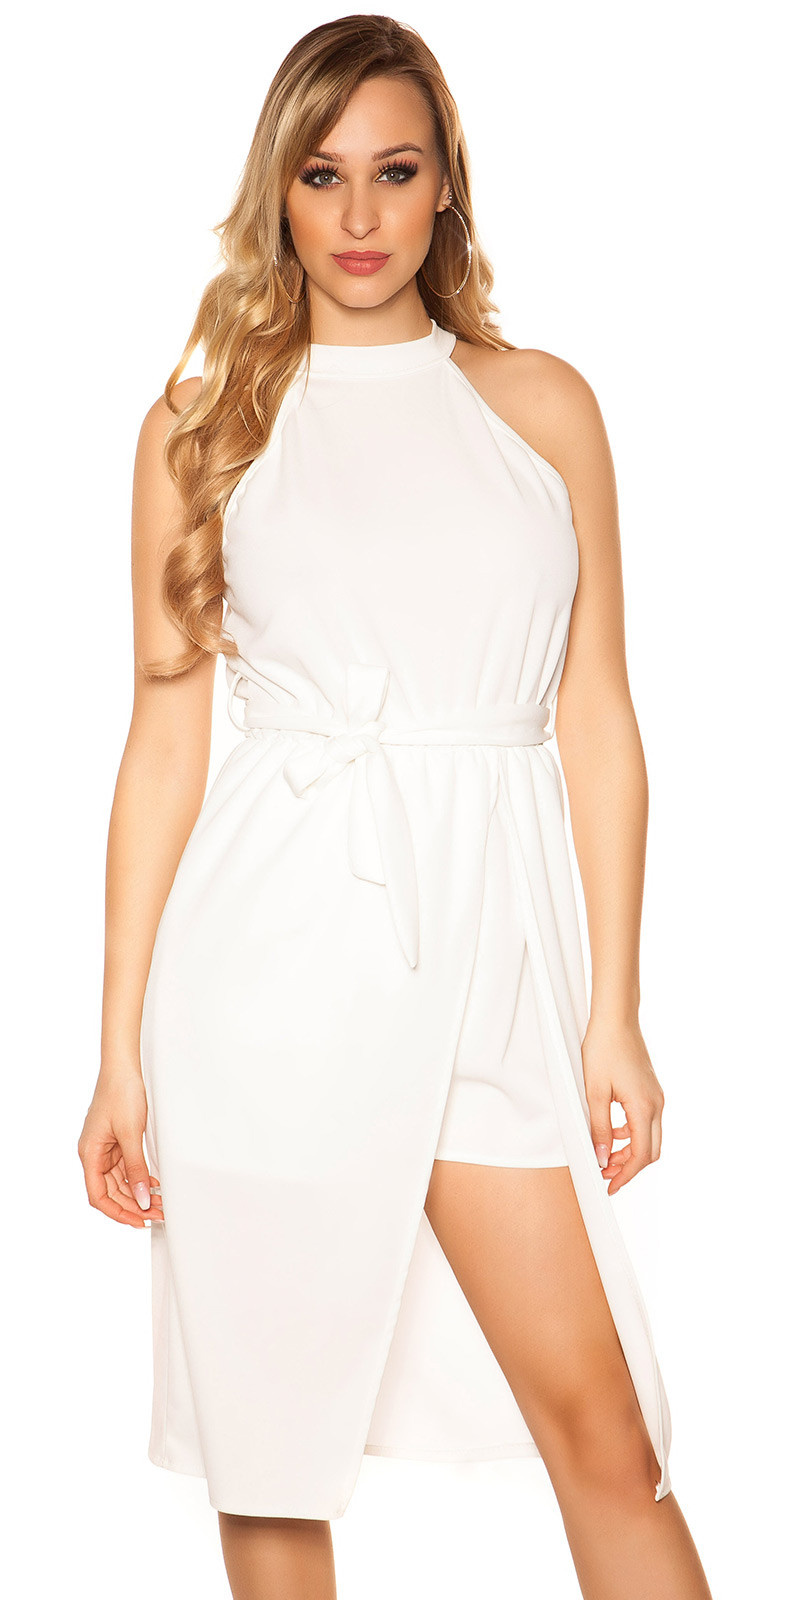 Sexy 2in1 Neck Playsuit with skirt White